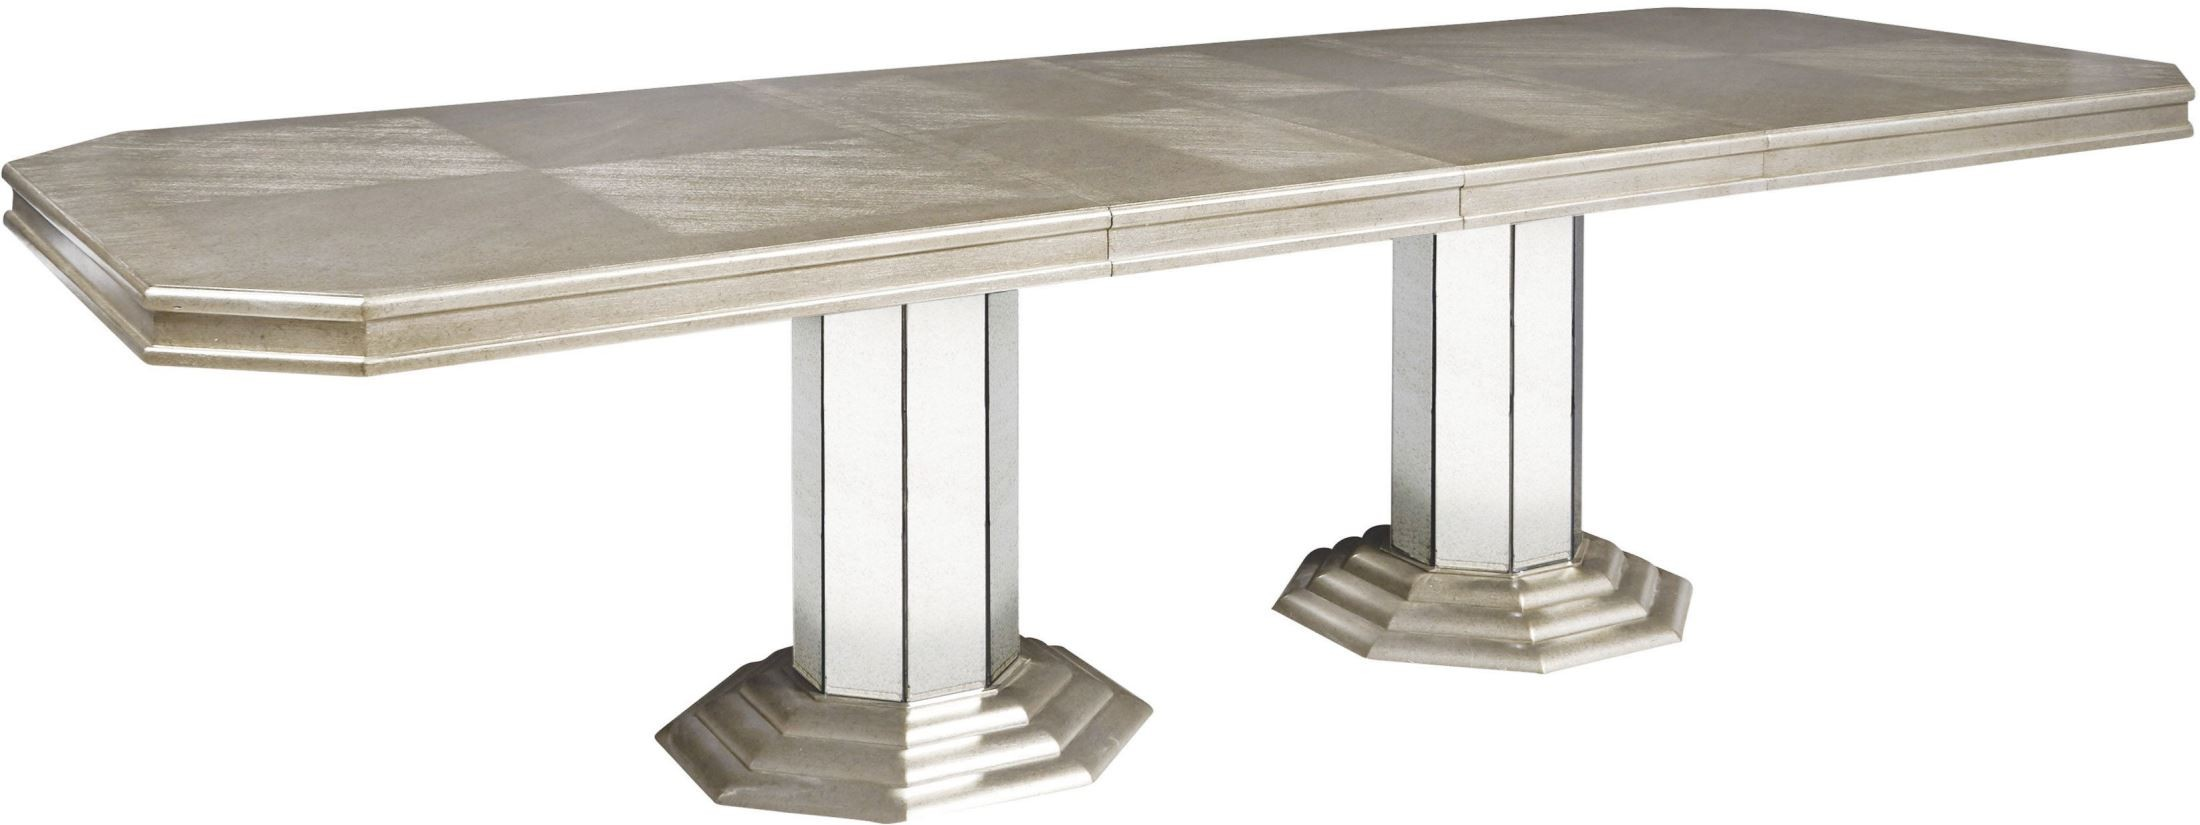 Couture silver rectangular extendable double pedestal for Rectangular pedestal dining table